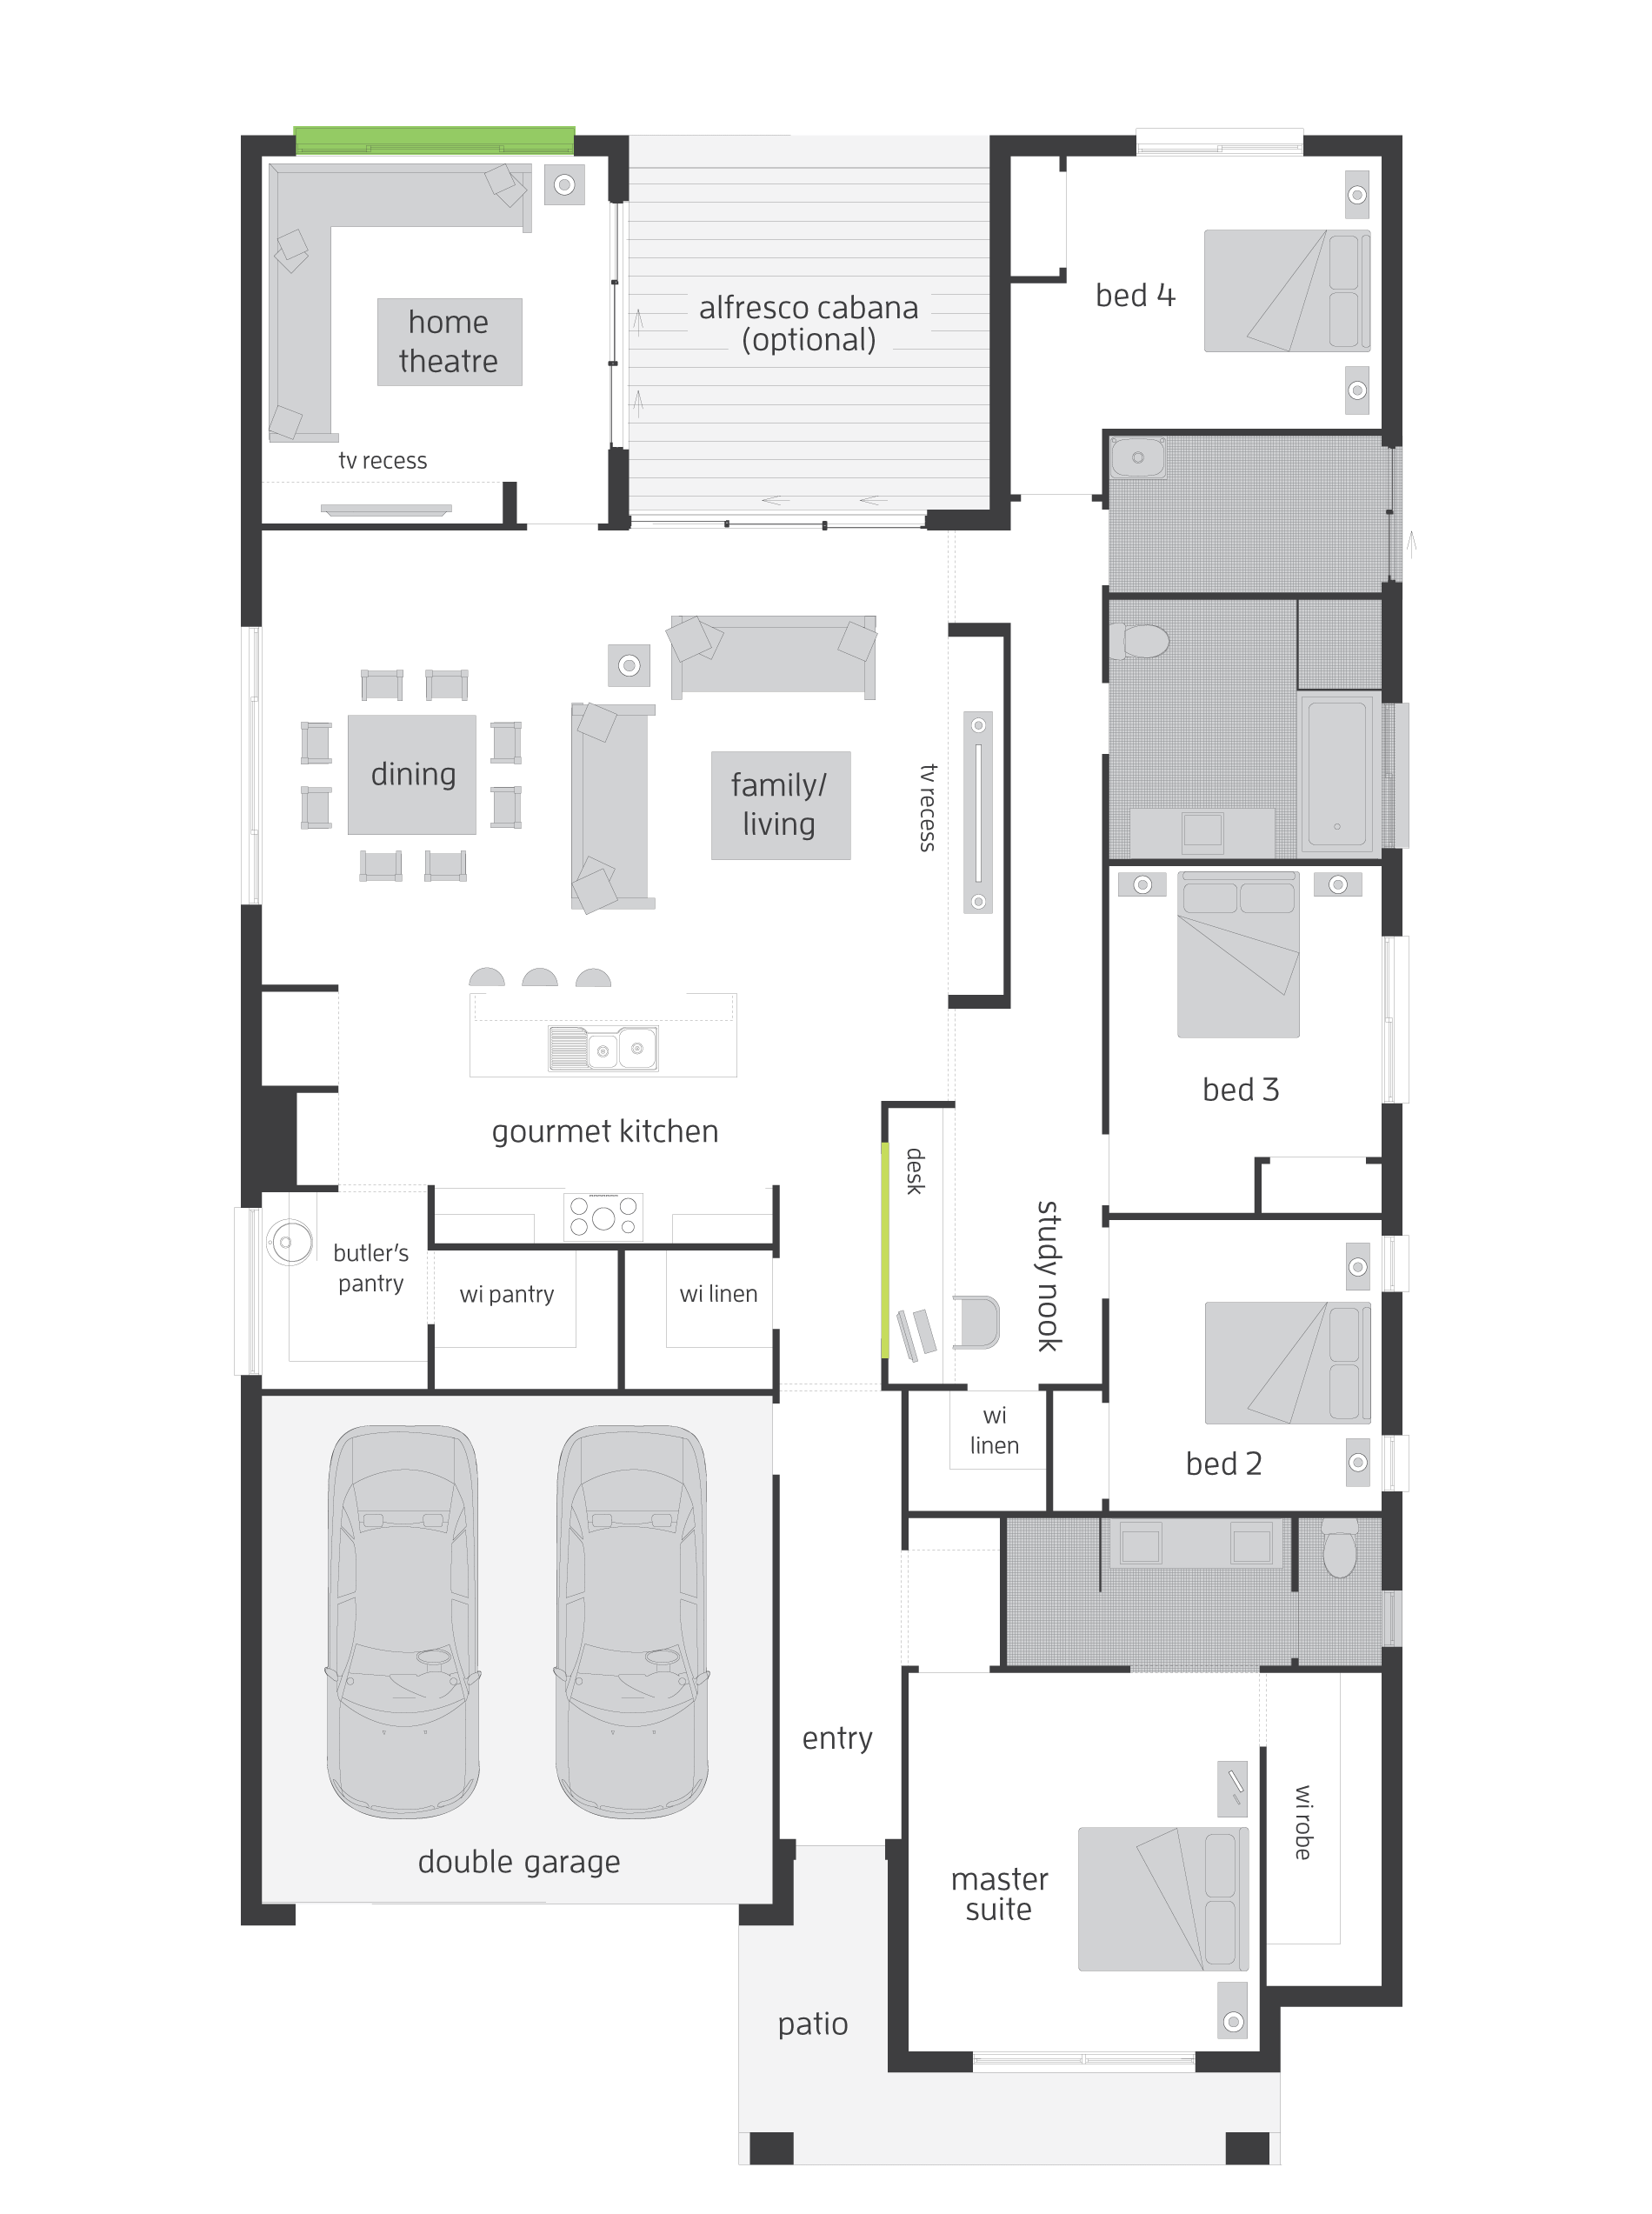 Floor plan friday 4 bedroom with theatre study nook for S bedroom house plans